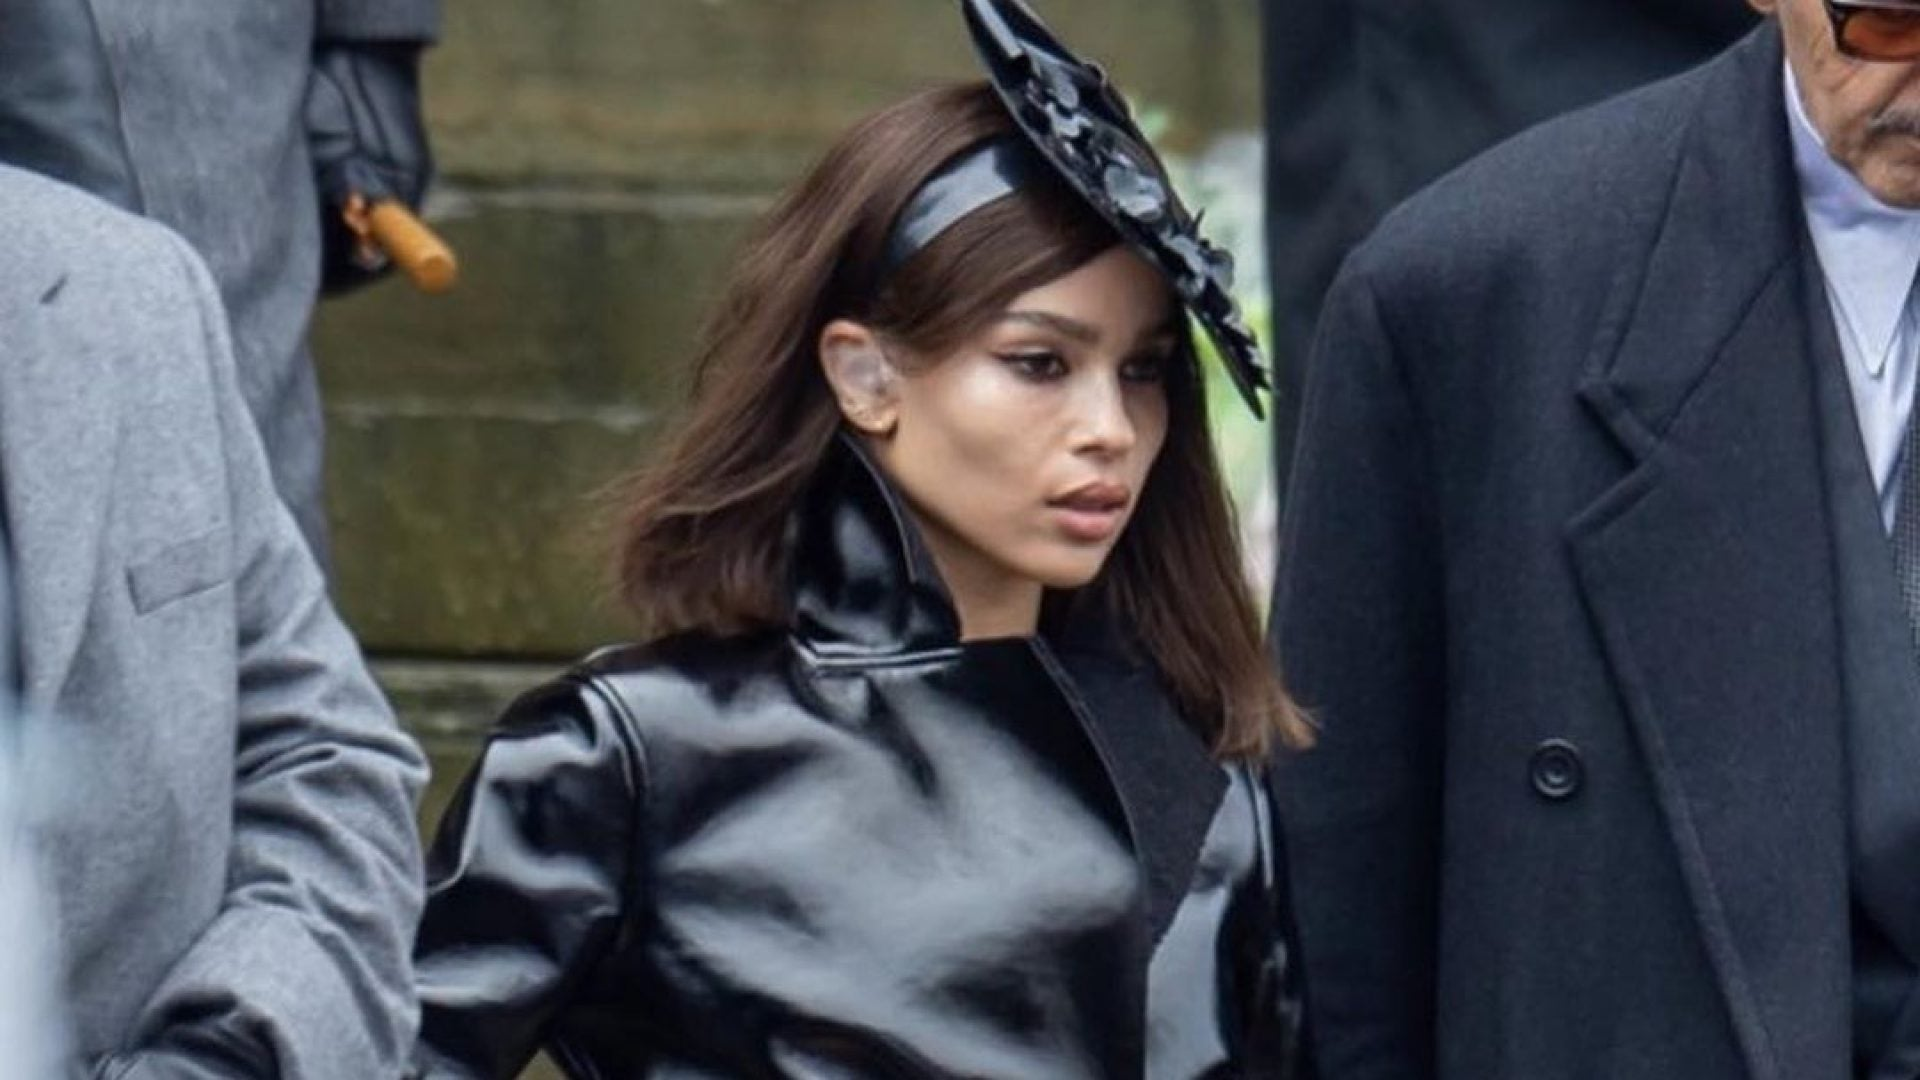 Take A First Look At Zoe Kravitz As Catwoman